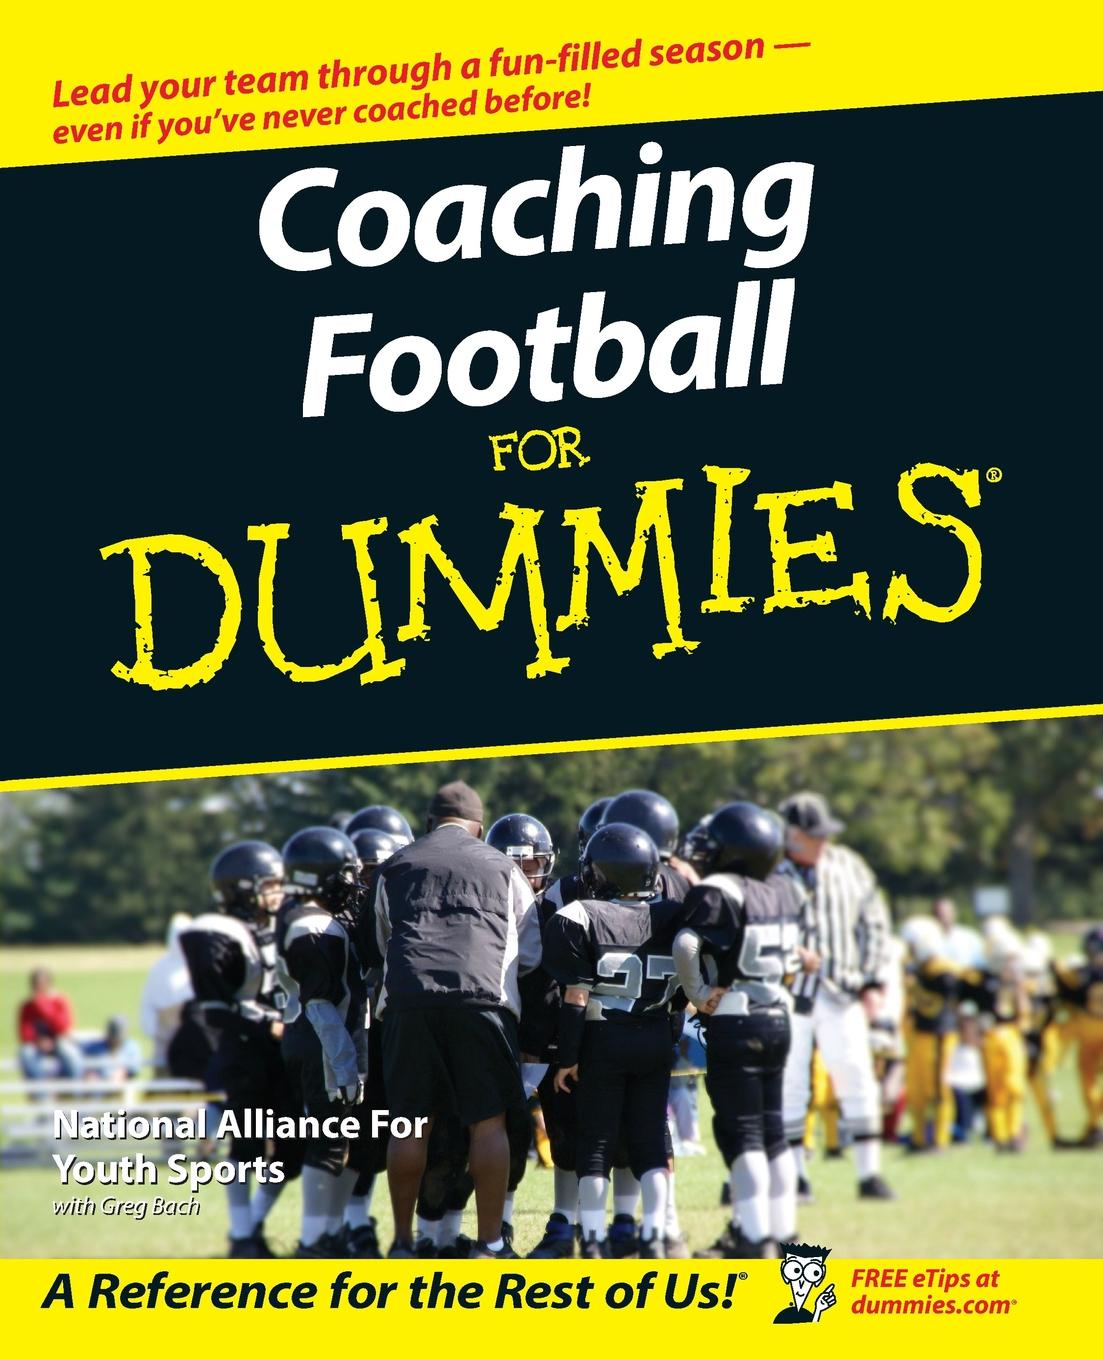 The National Alliance of Youth Sports Coaching Football For Dummies the koran for dummies®